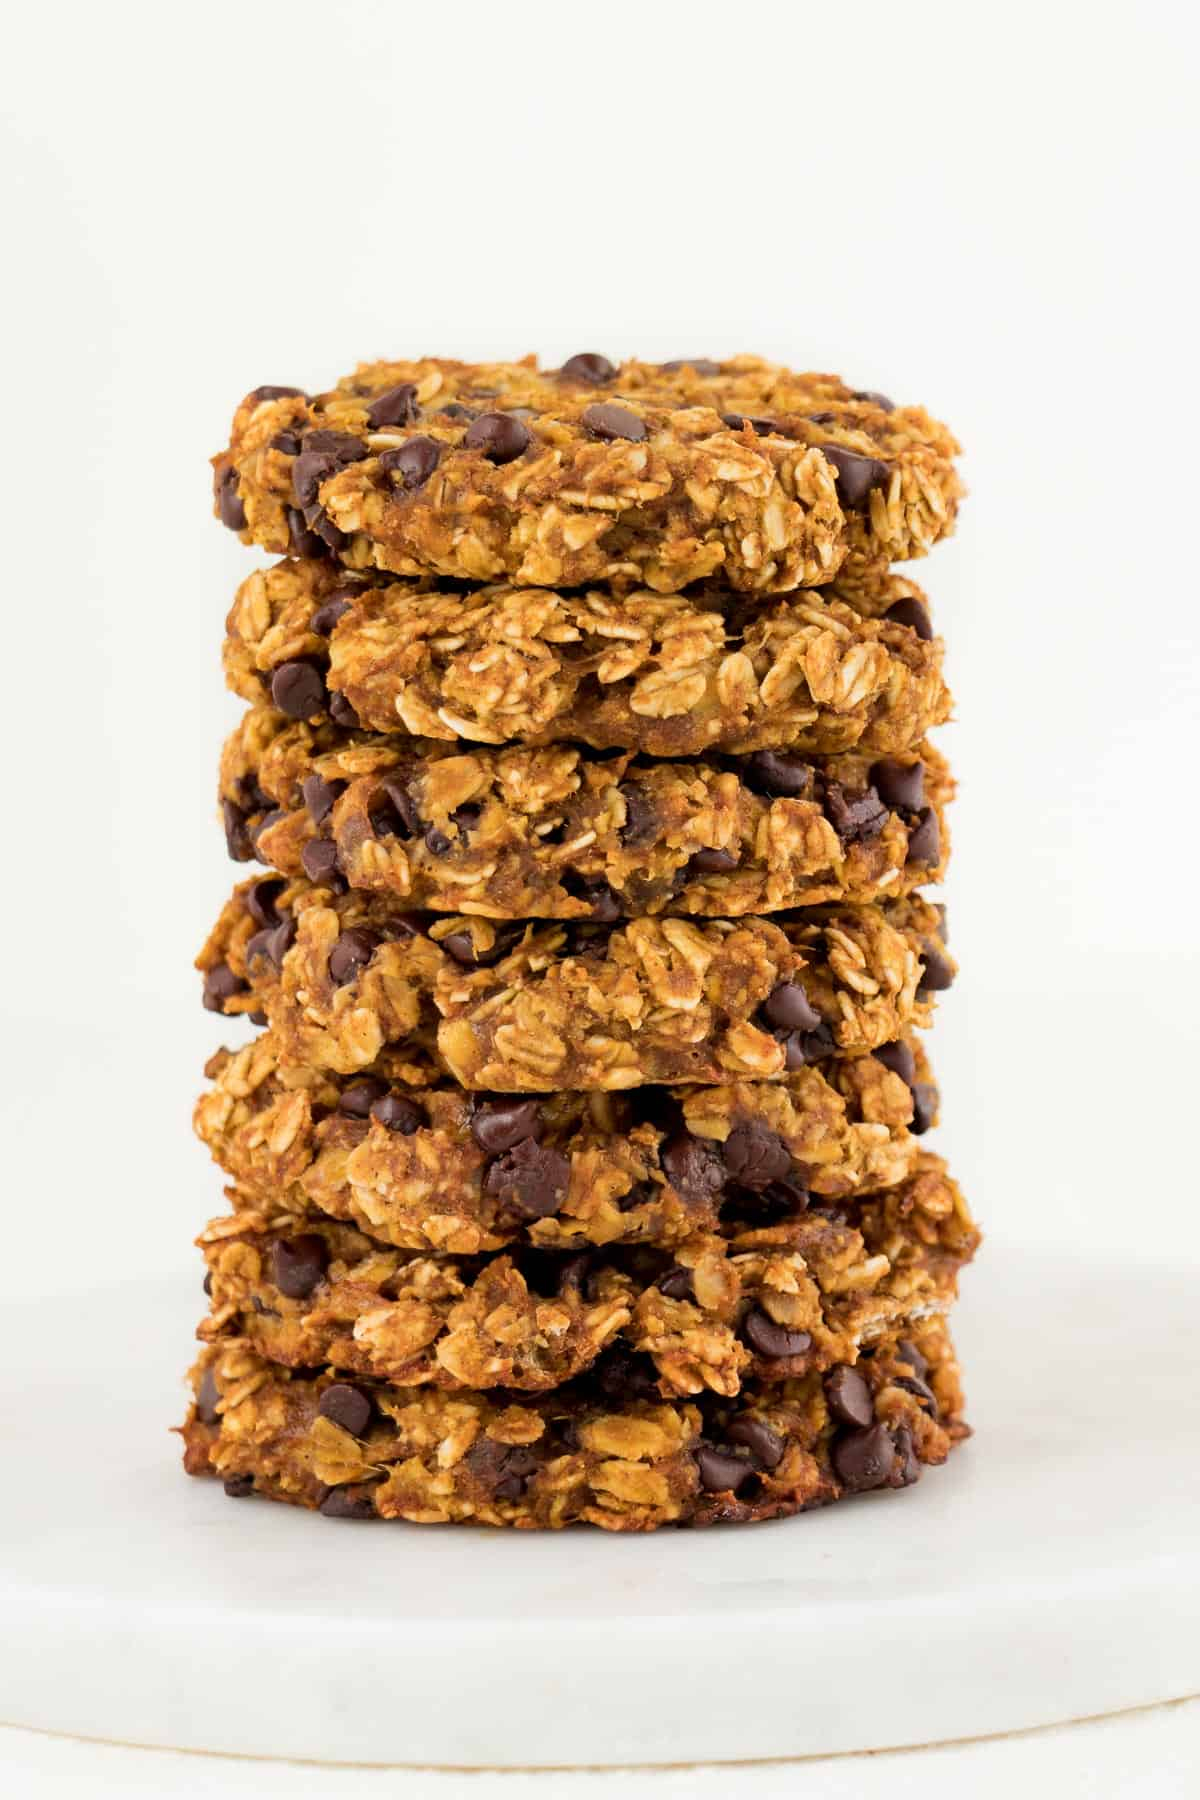 seven oatmeal chocolate chip pumpkin cookies stacked on top of each other